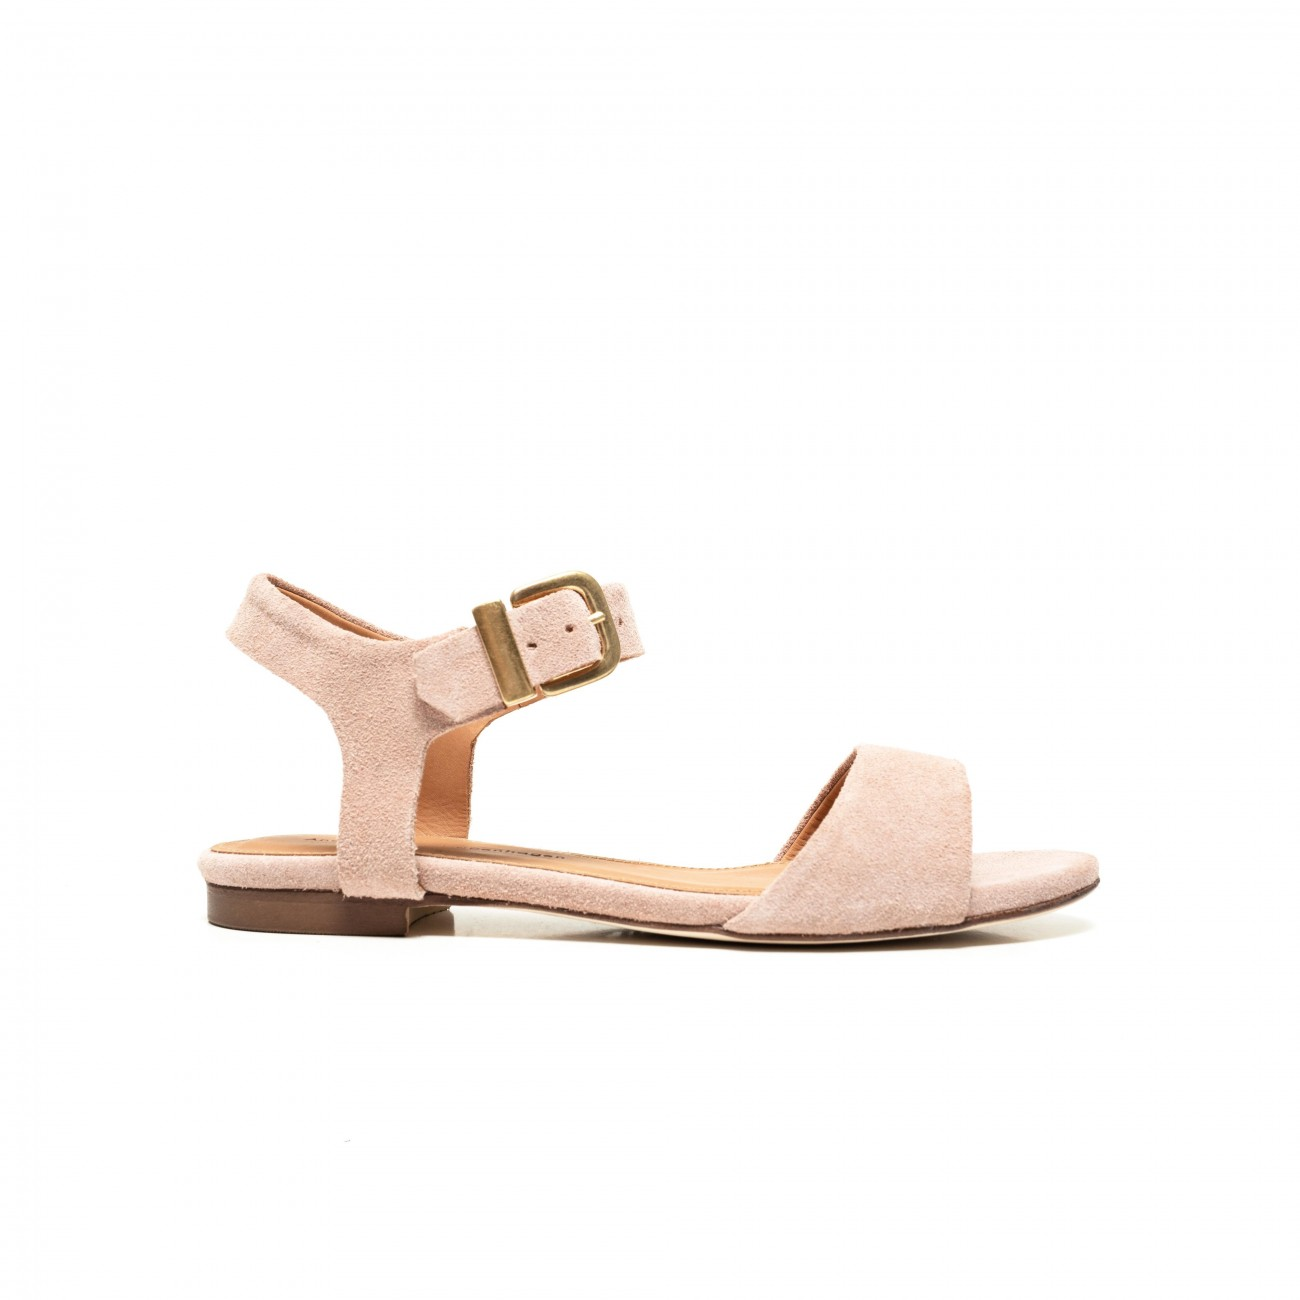 Lena suede pink shell